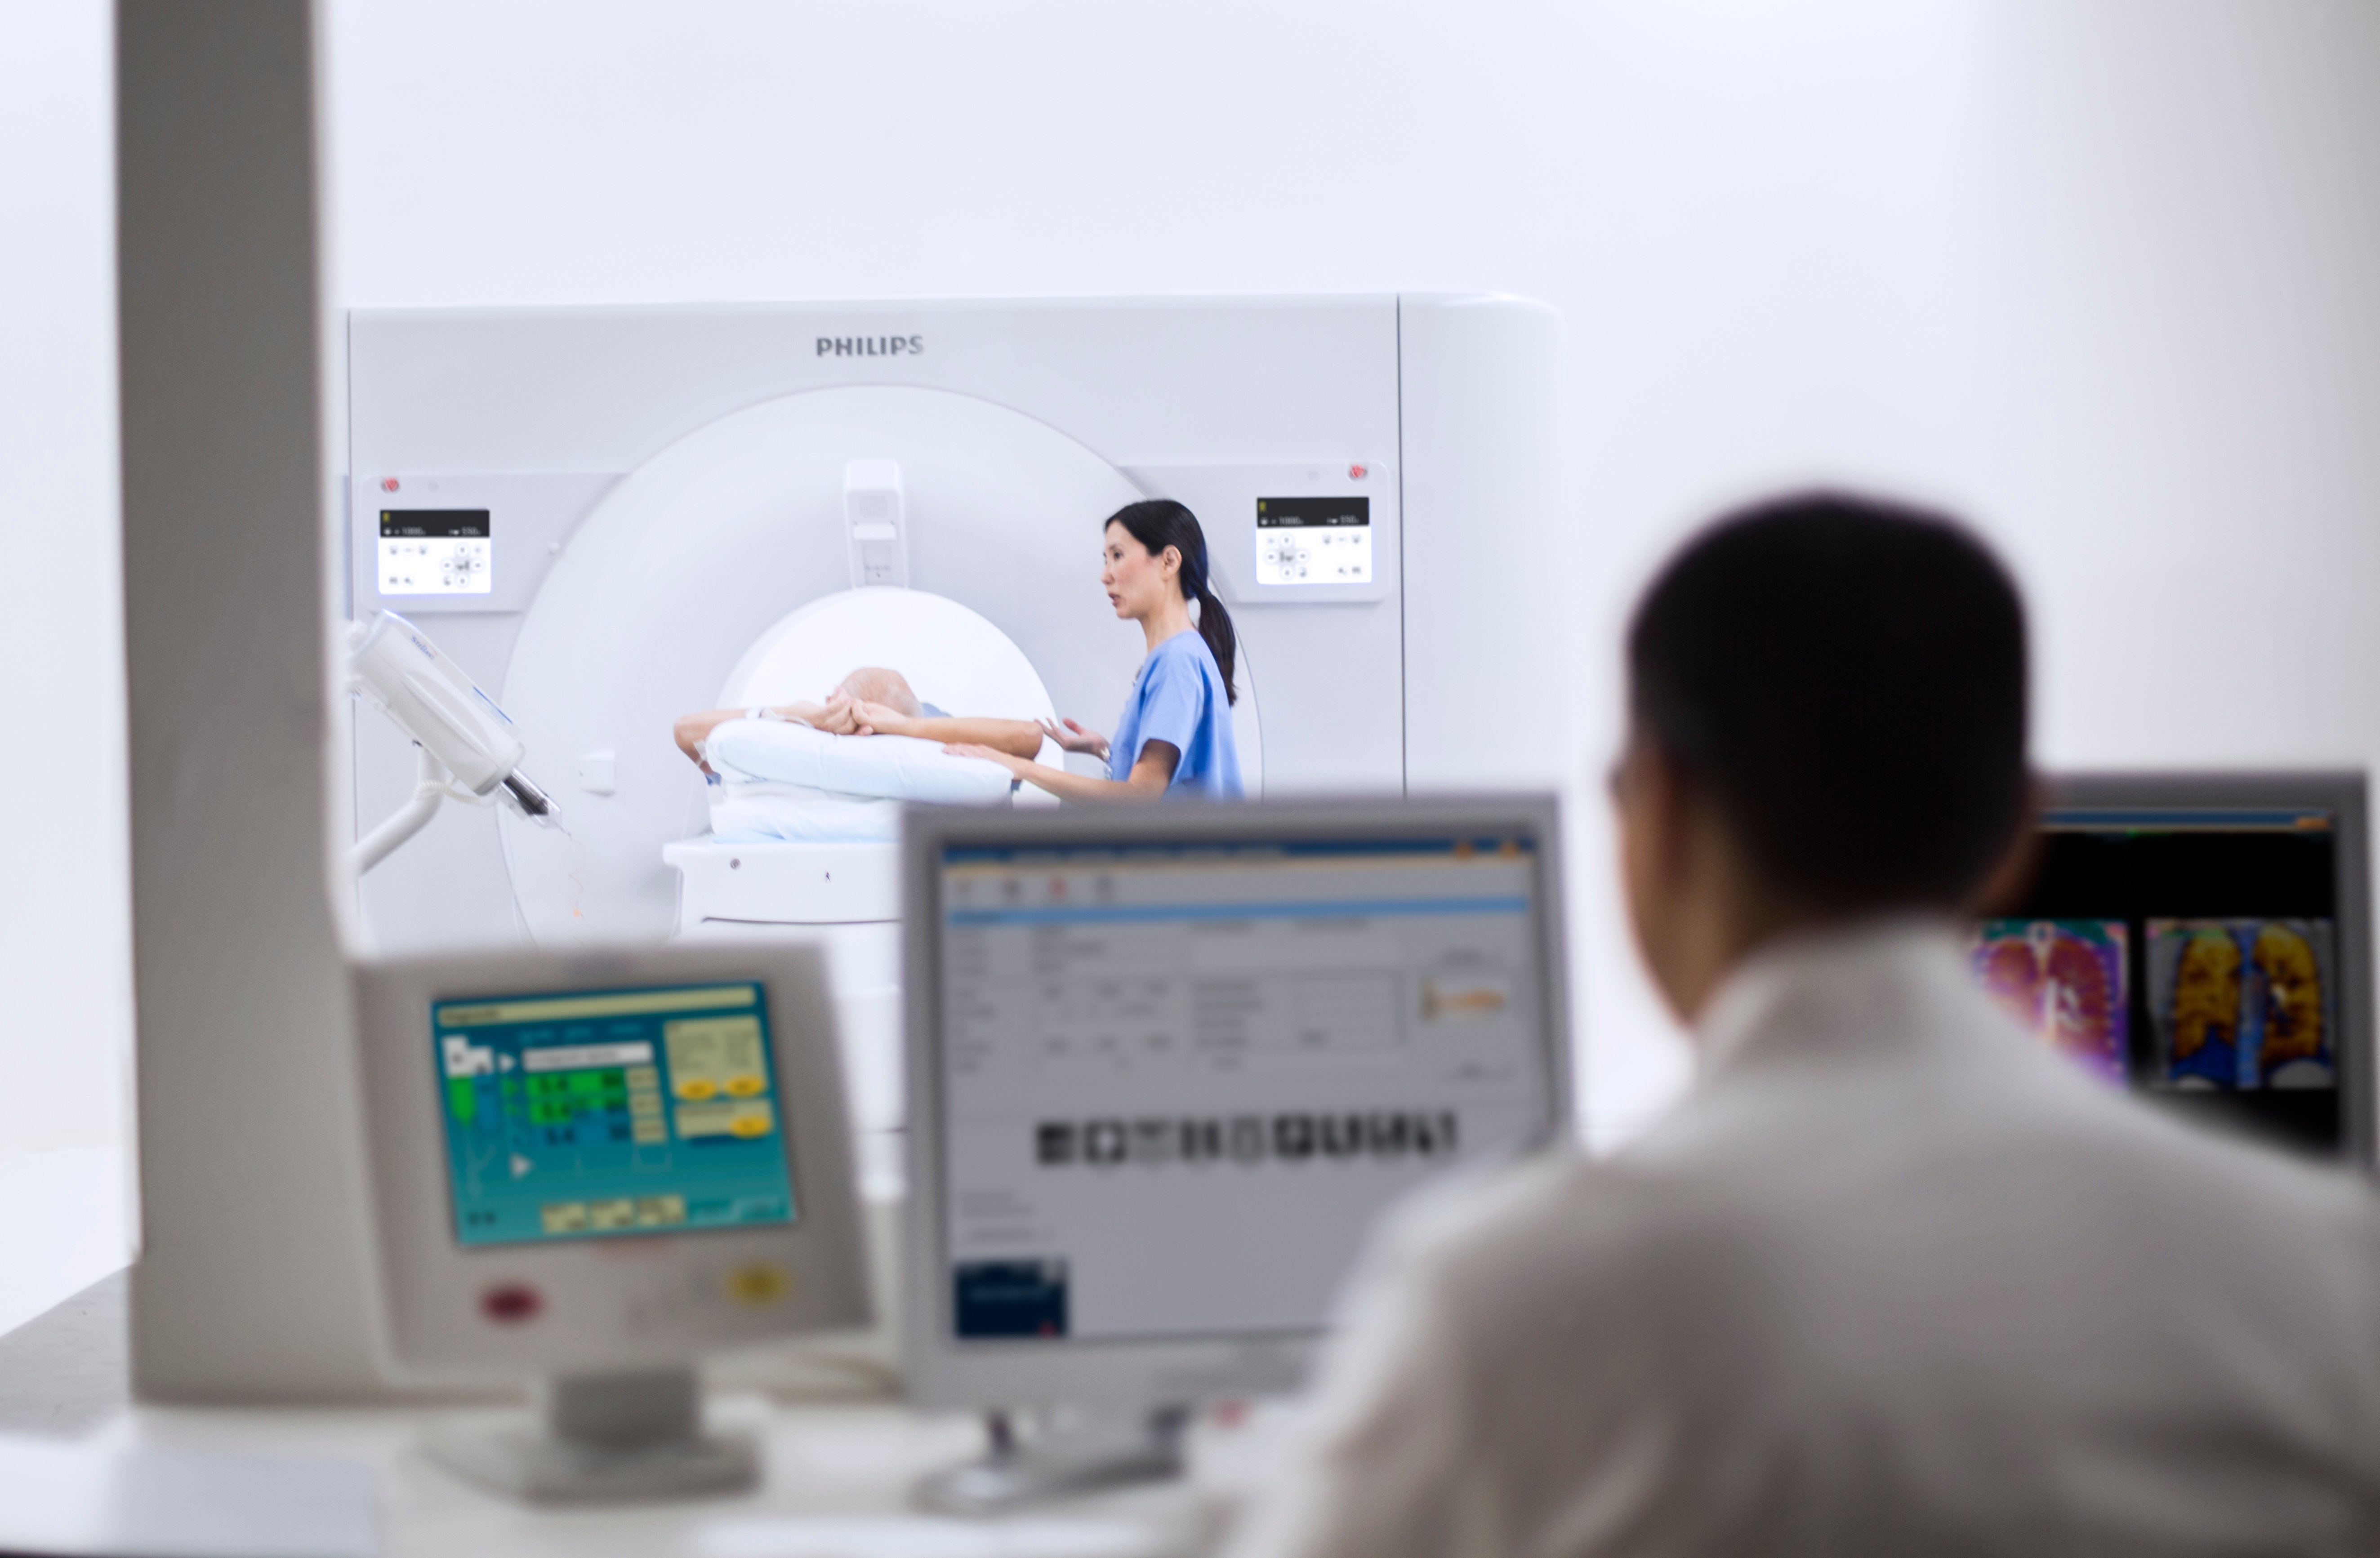 The Philips IQon Elite debuted at RSNA 2017 with features designed for emergency and trauma imaging. #RSNA2017, #RSNA17